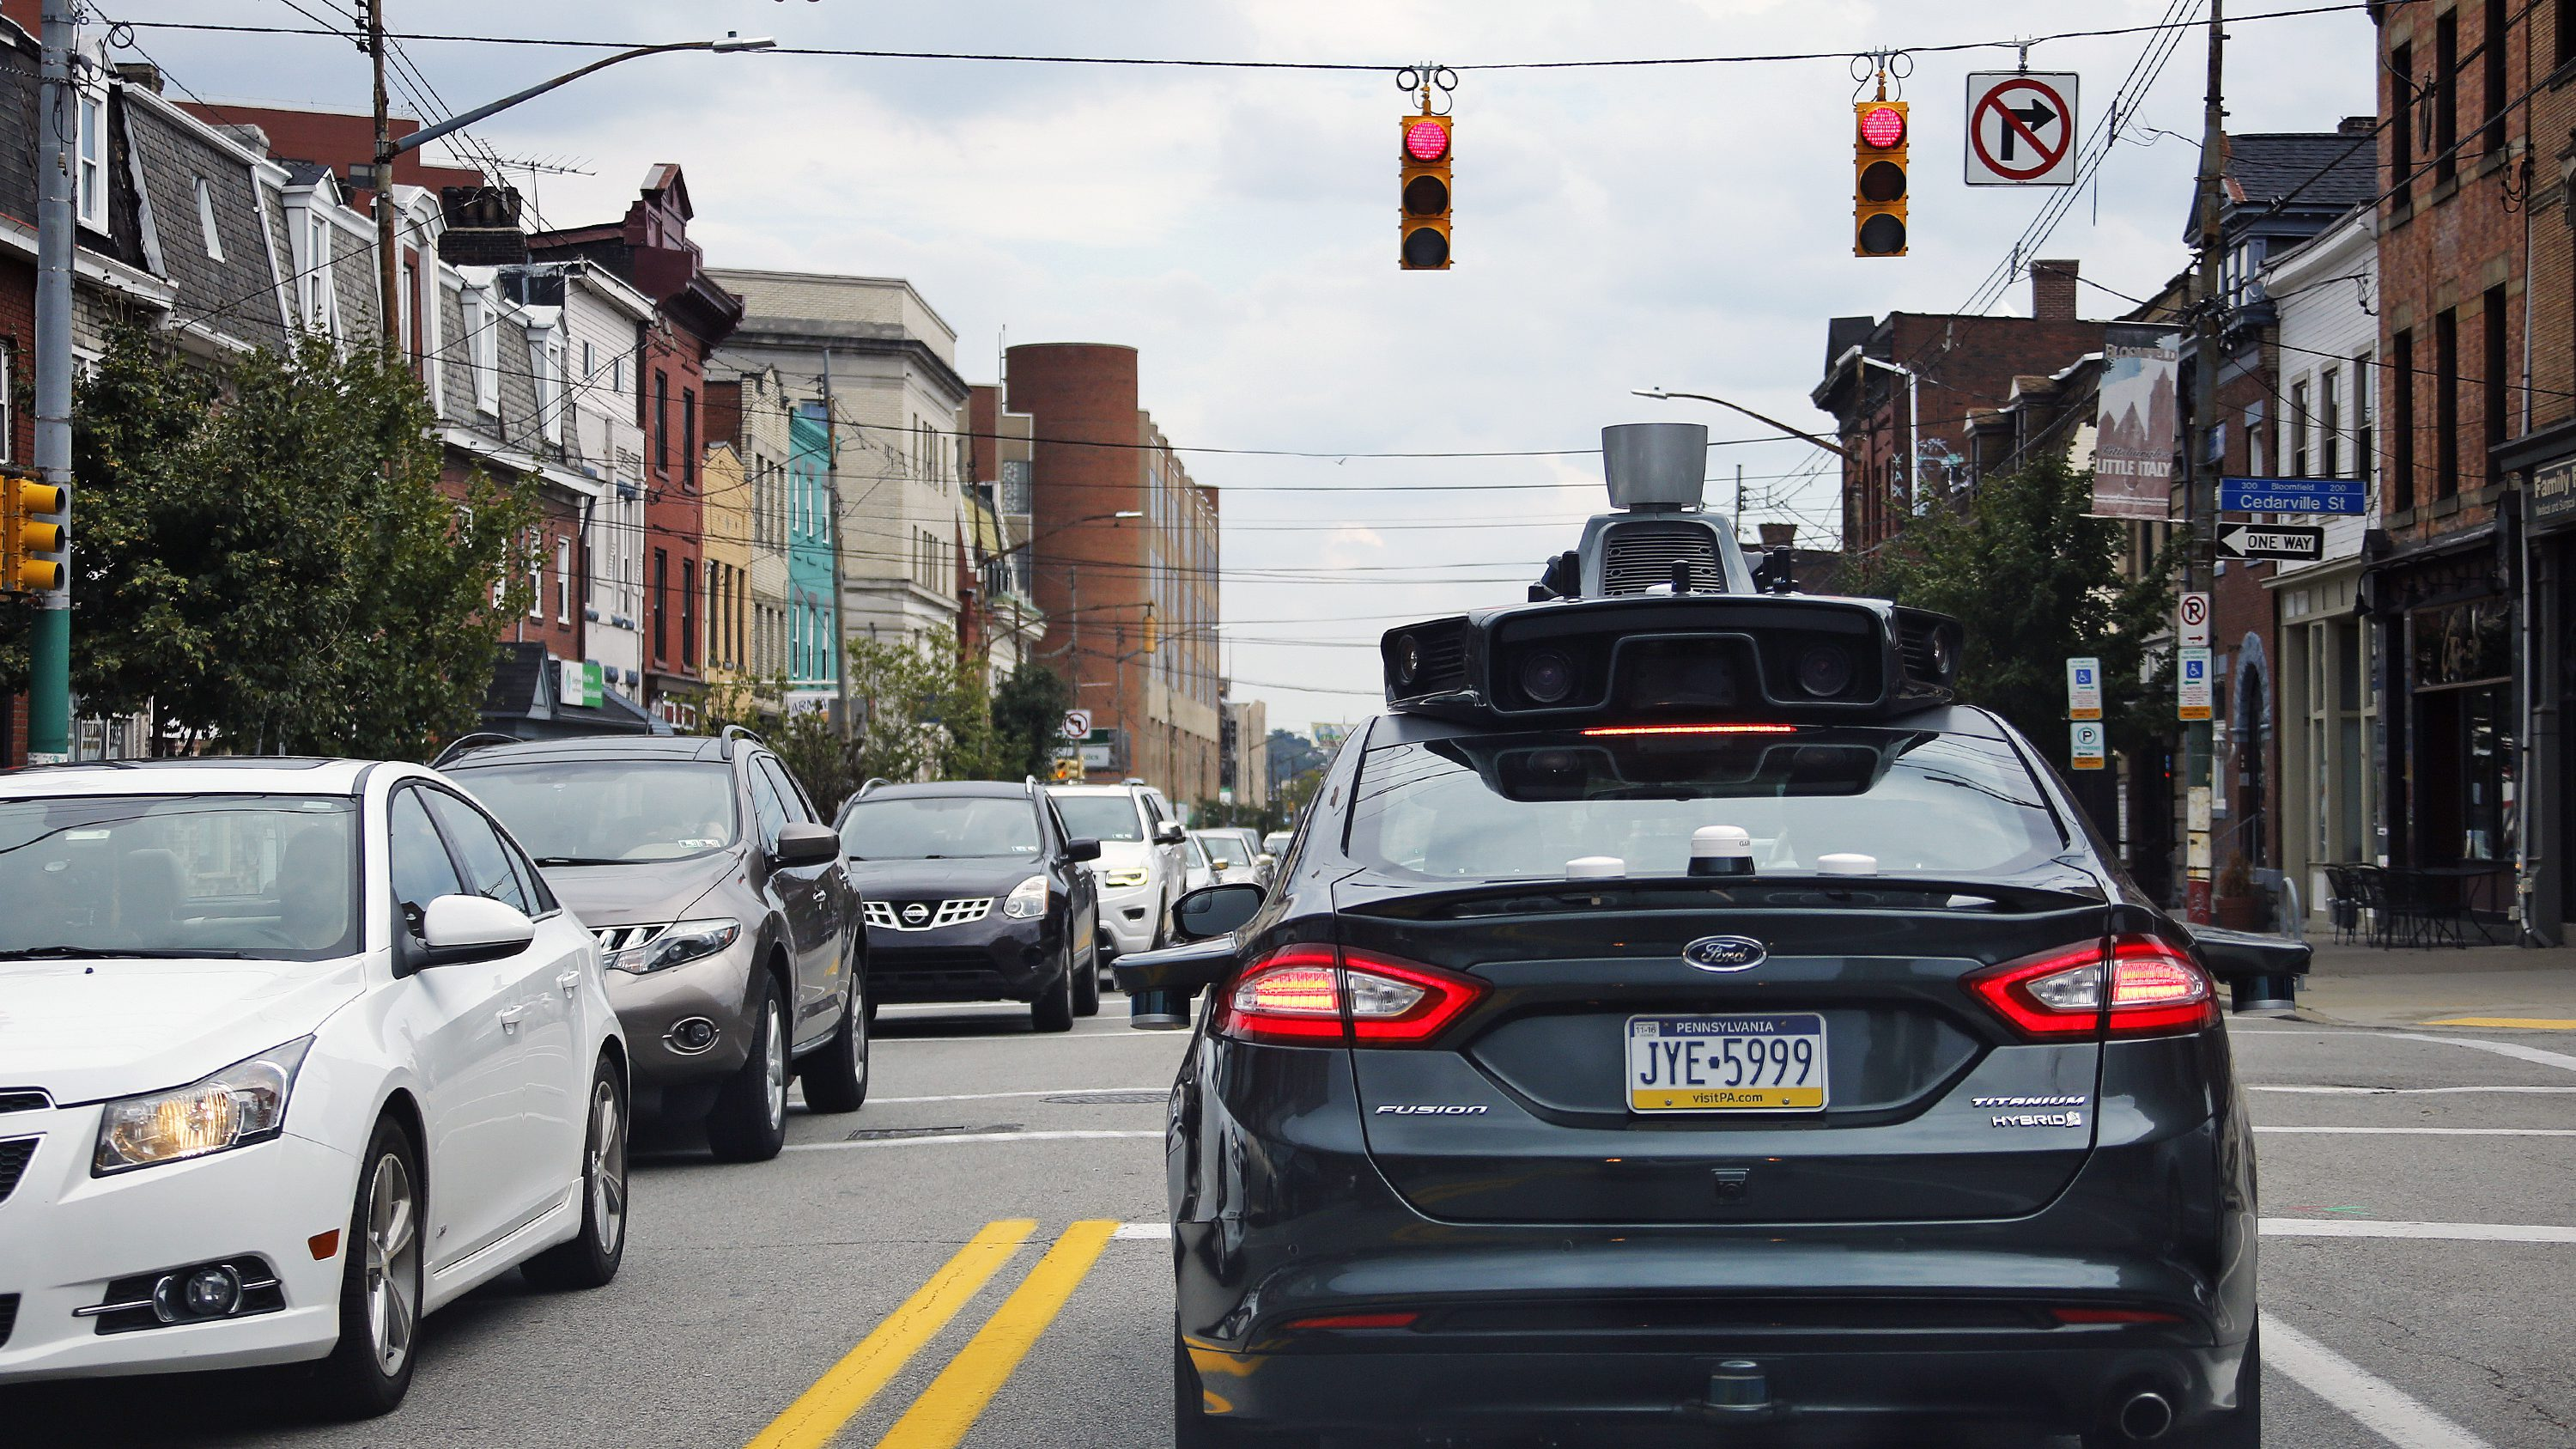 A self driving Uber car drives on Liberty Ave. through the Bloomfield neighborhood of Pittsburgh.